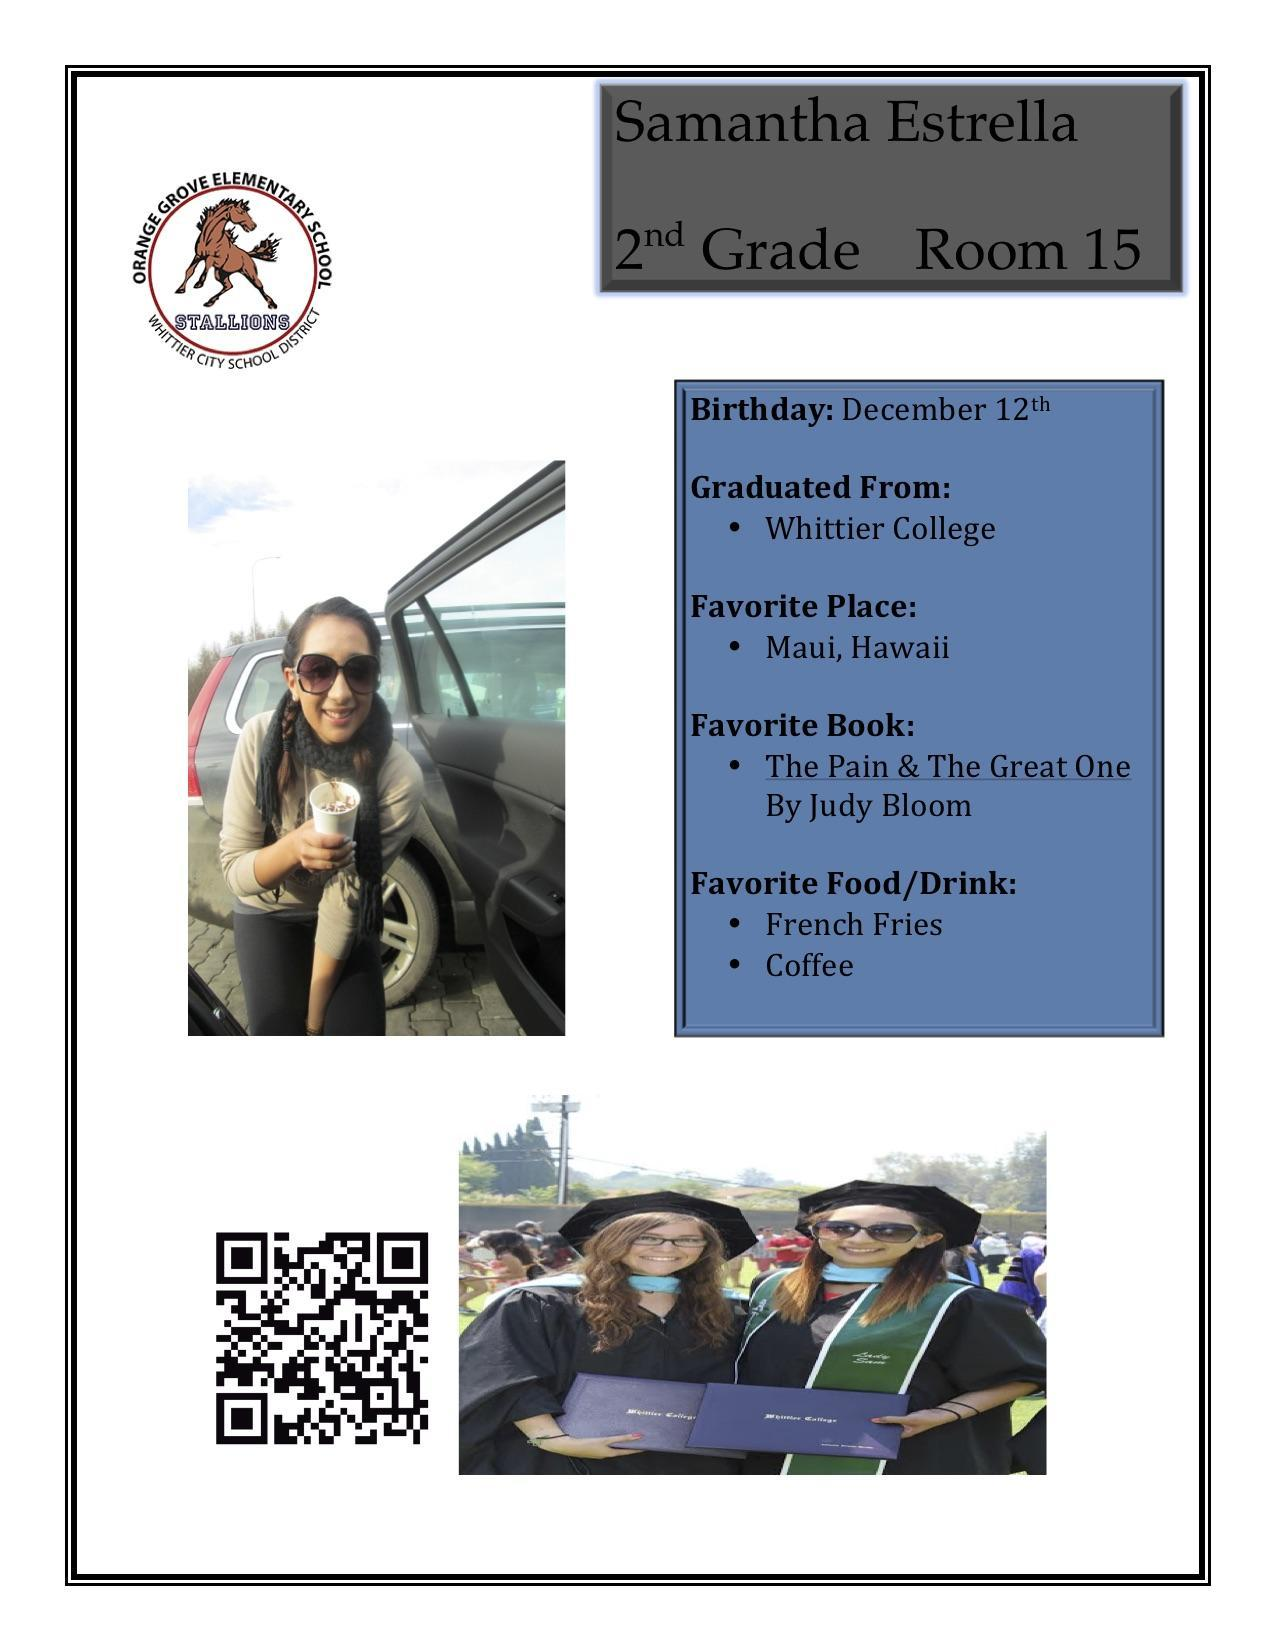 staff flyer for Miss Estrella